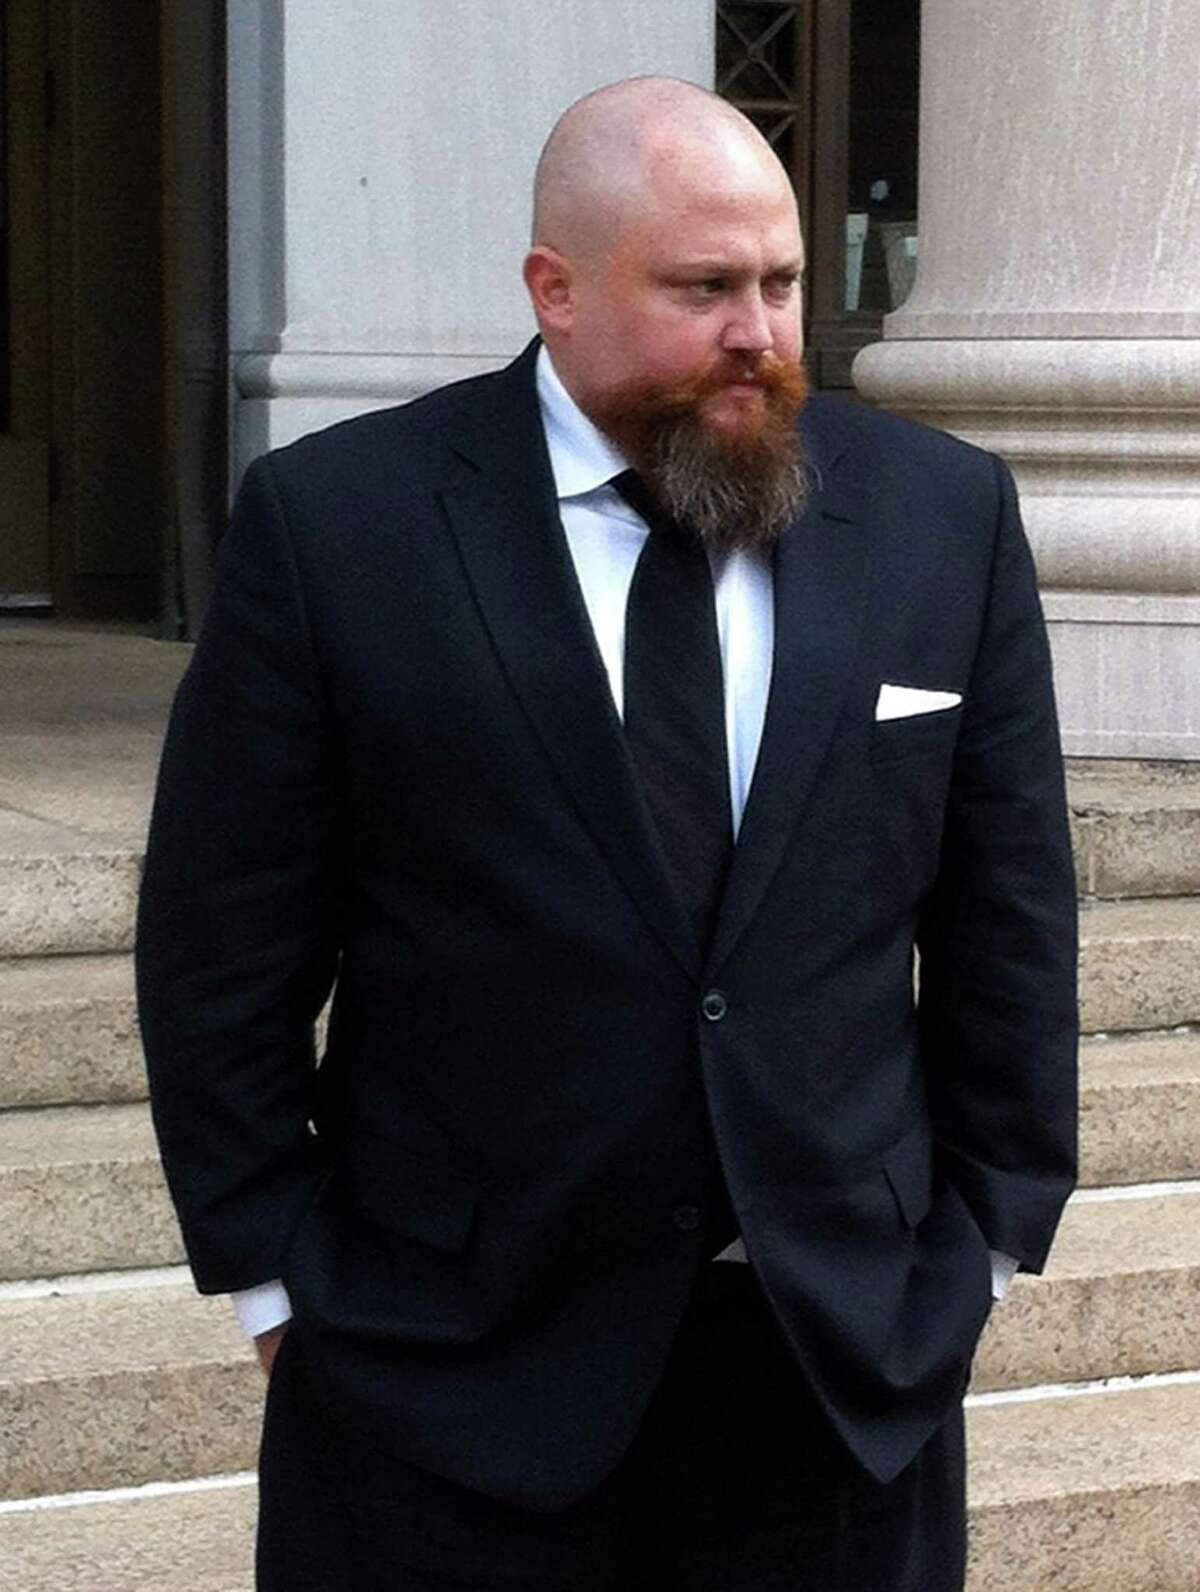 Robert Braddock Jr. walks outside federal court in New Haven, Conn., Monday May 13, 2013. Braddock, the finance director for ex-Connecticut House Speaker's failed congressional campaign last year, is on trial on conspiracy and campaign finance charges.